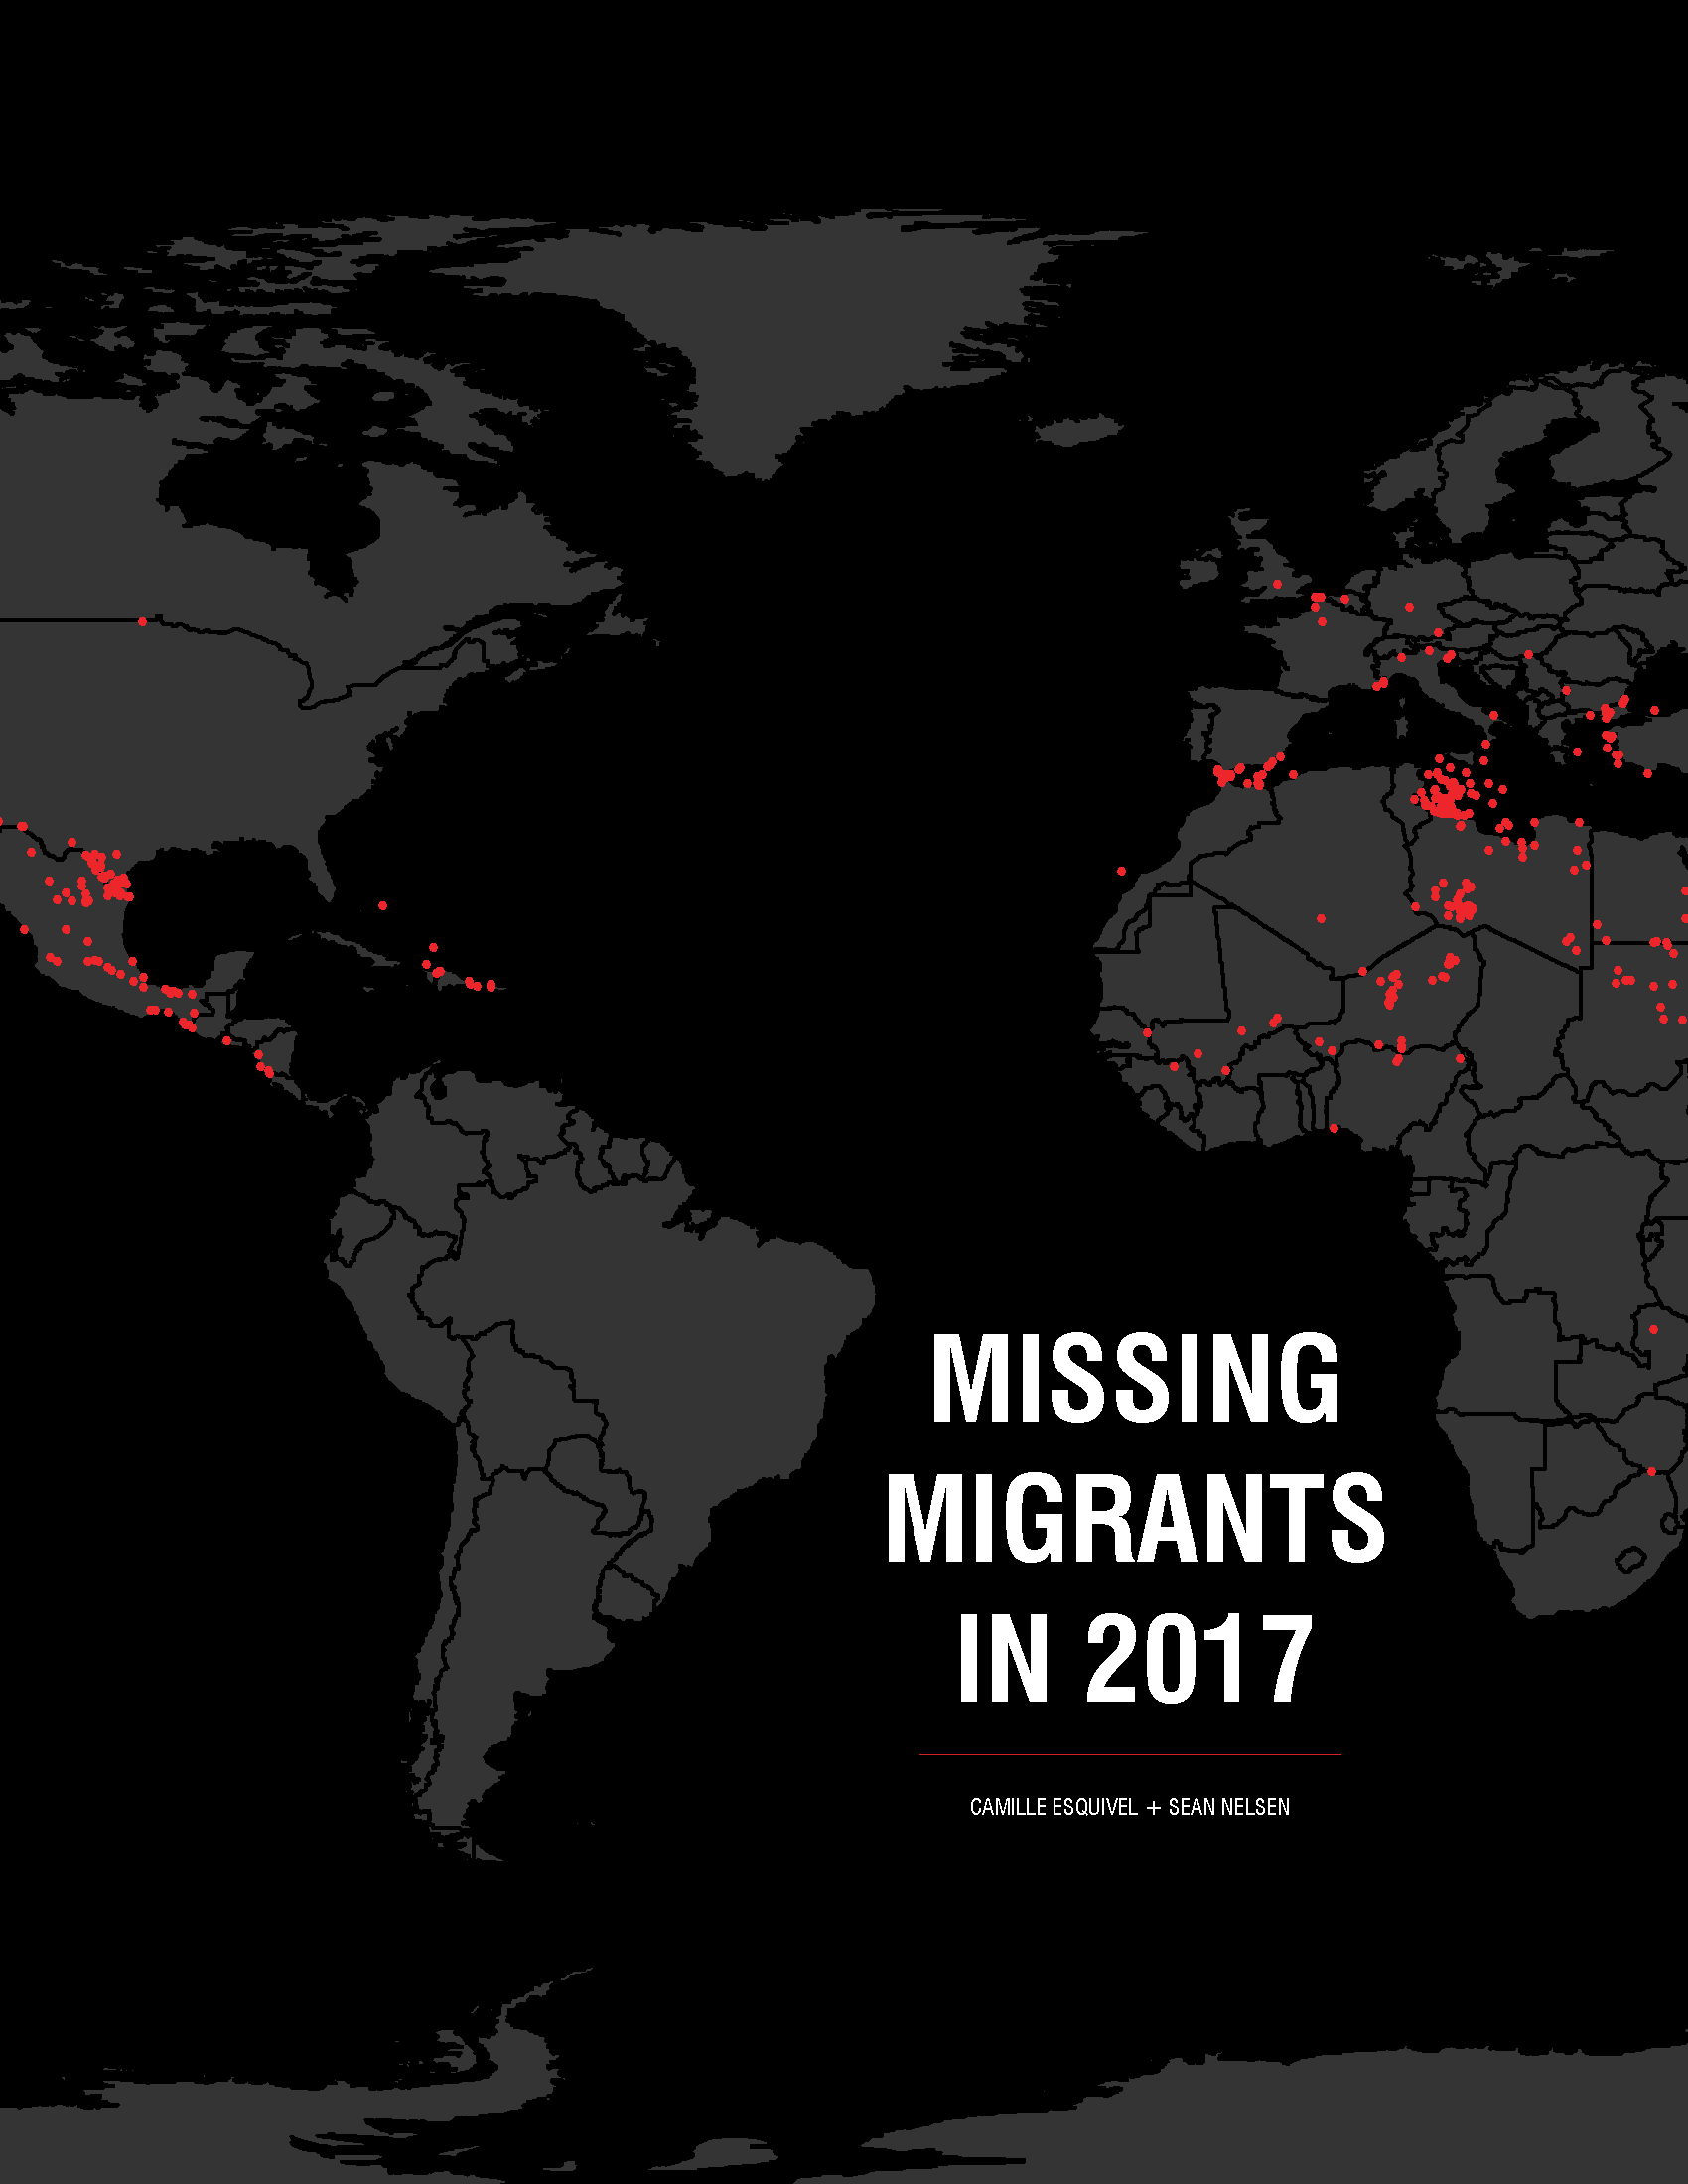 2017MissingMigrants_srn2140_ce2364_Page_01.png